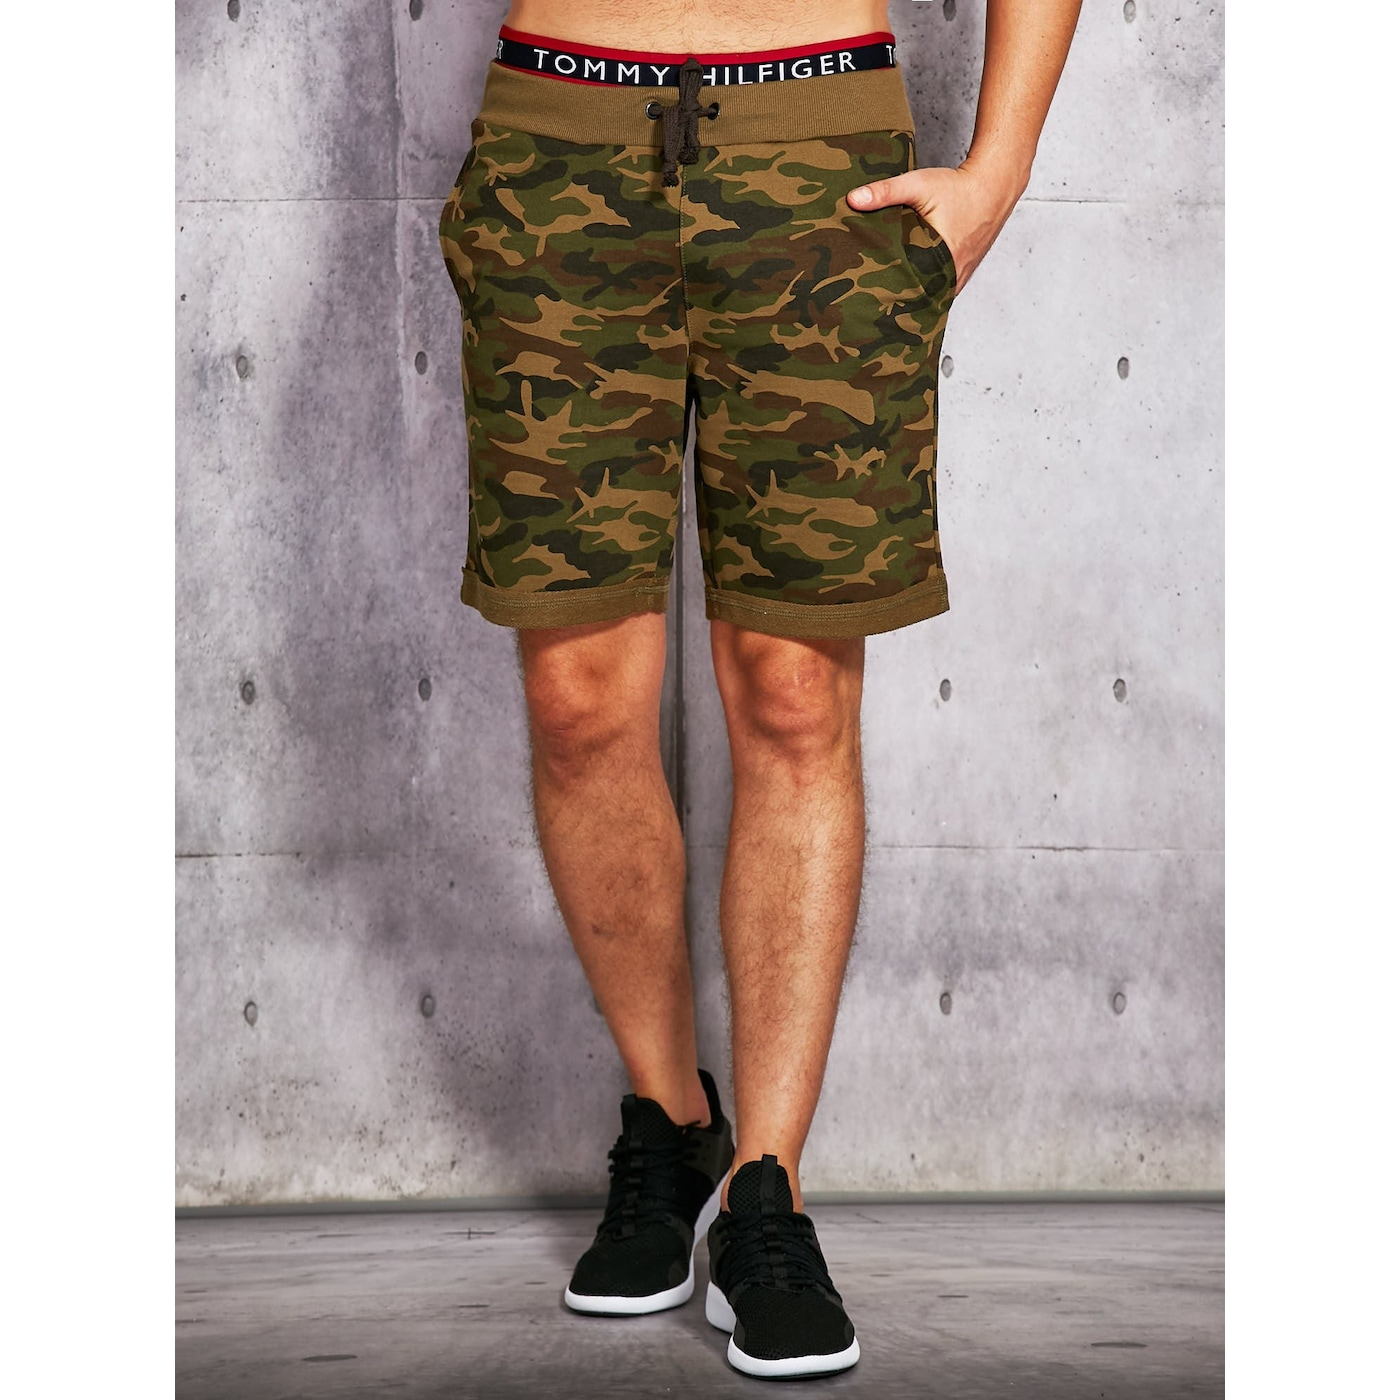 Men´s shorts in a military green pattern